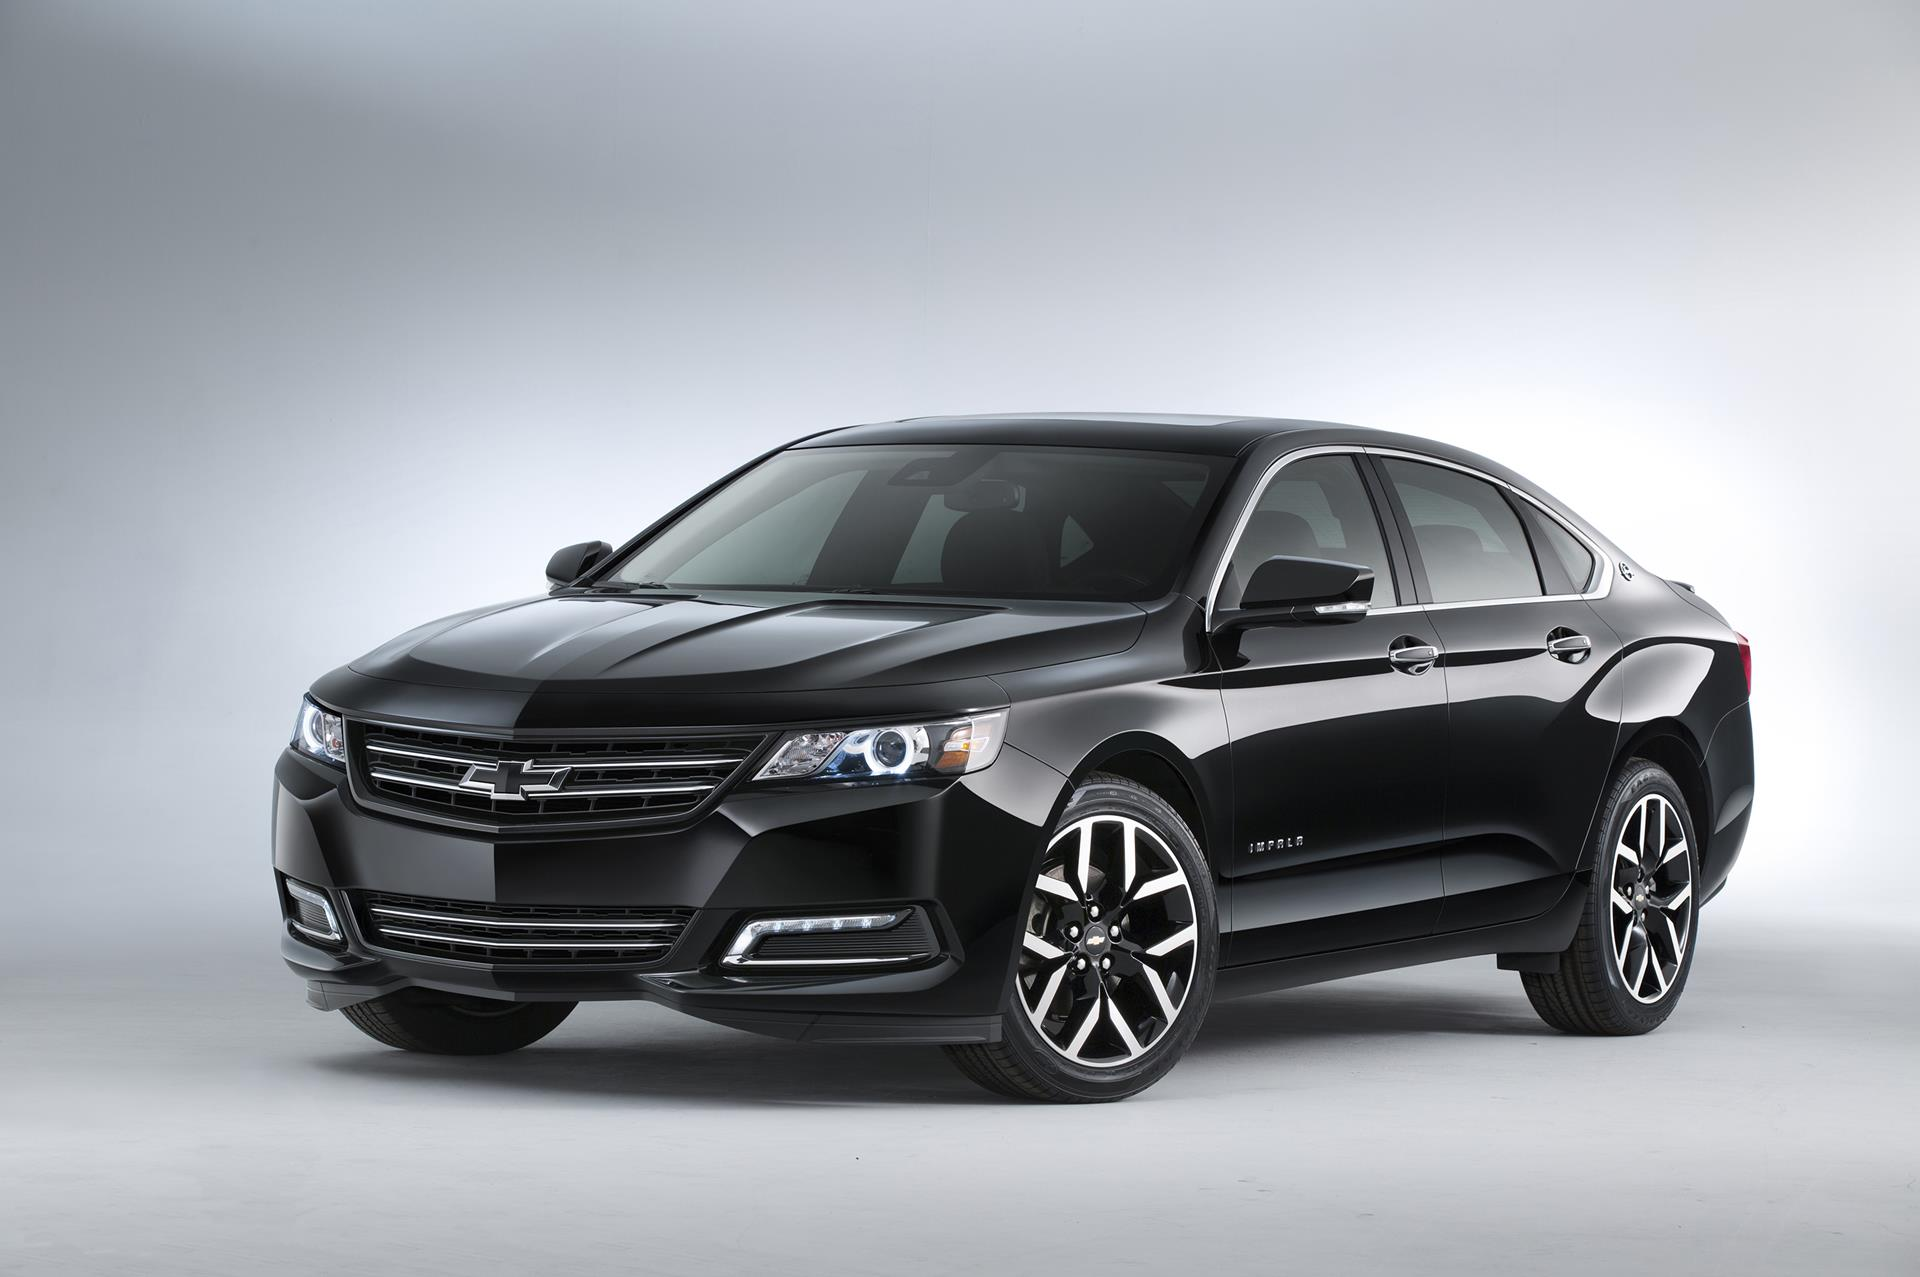 2014 Chevrolet Impala Blackout Concept News And Information, Research, And  Pricing